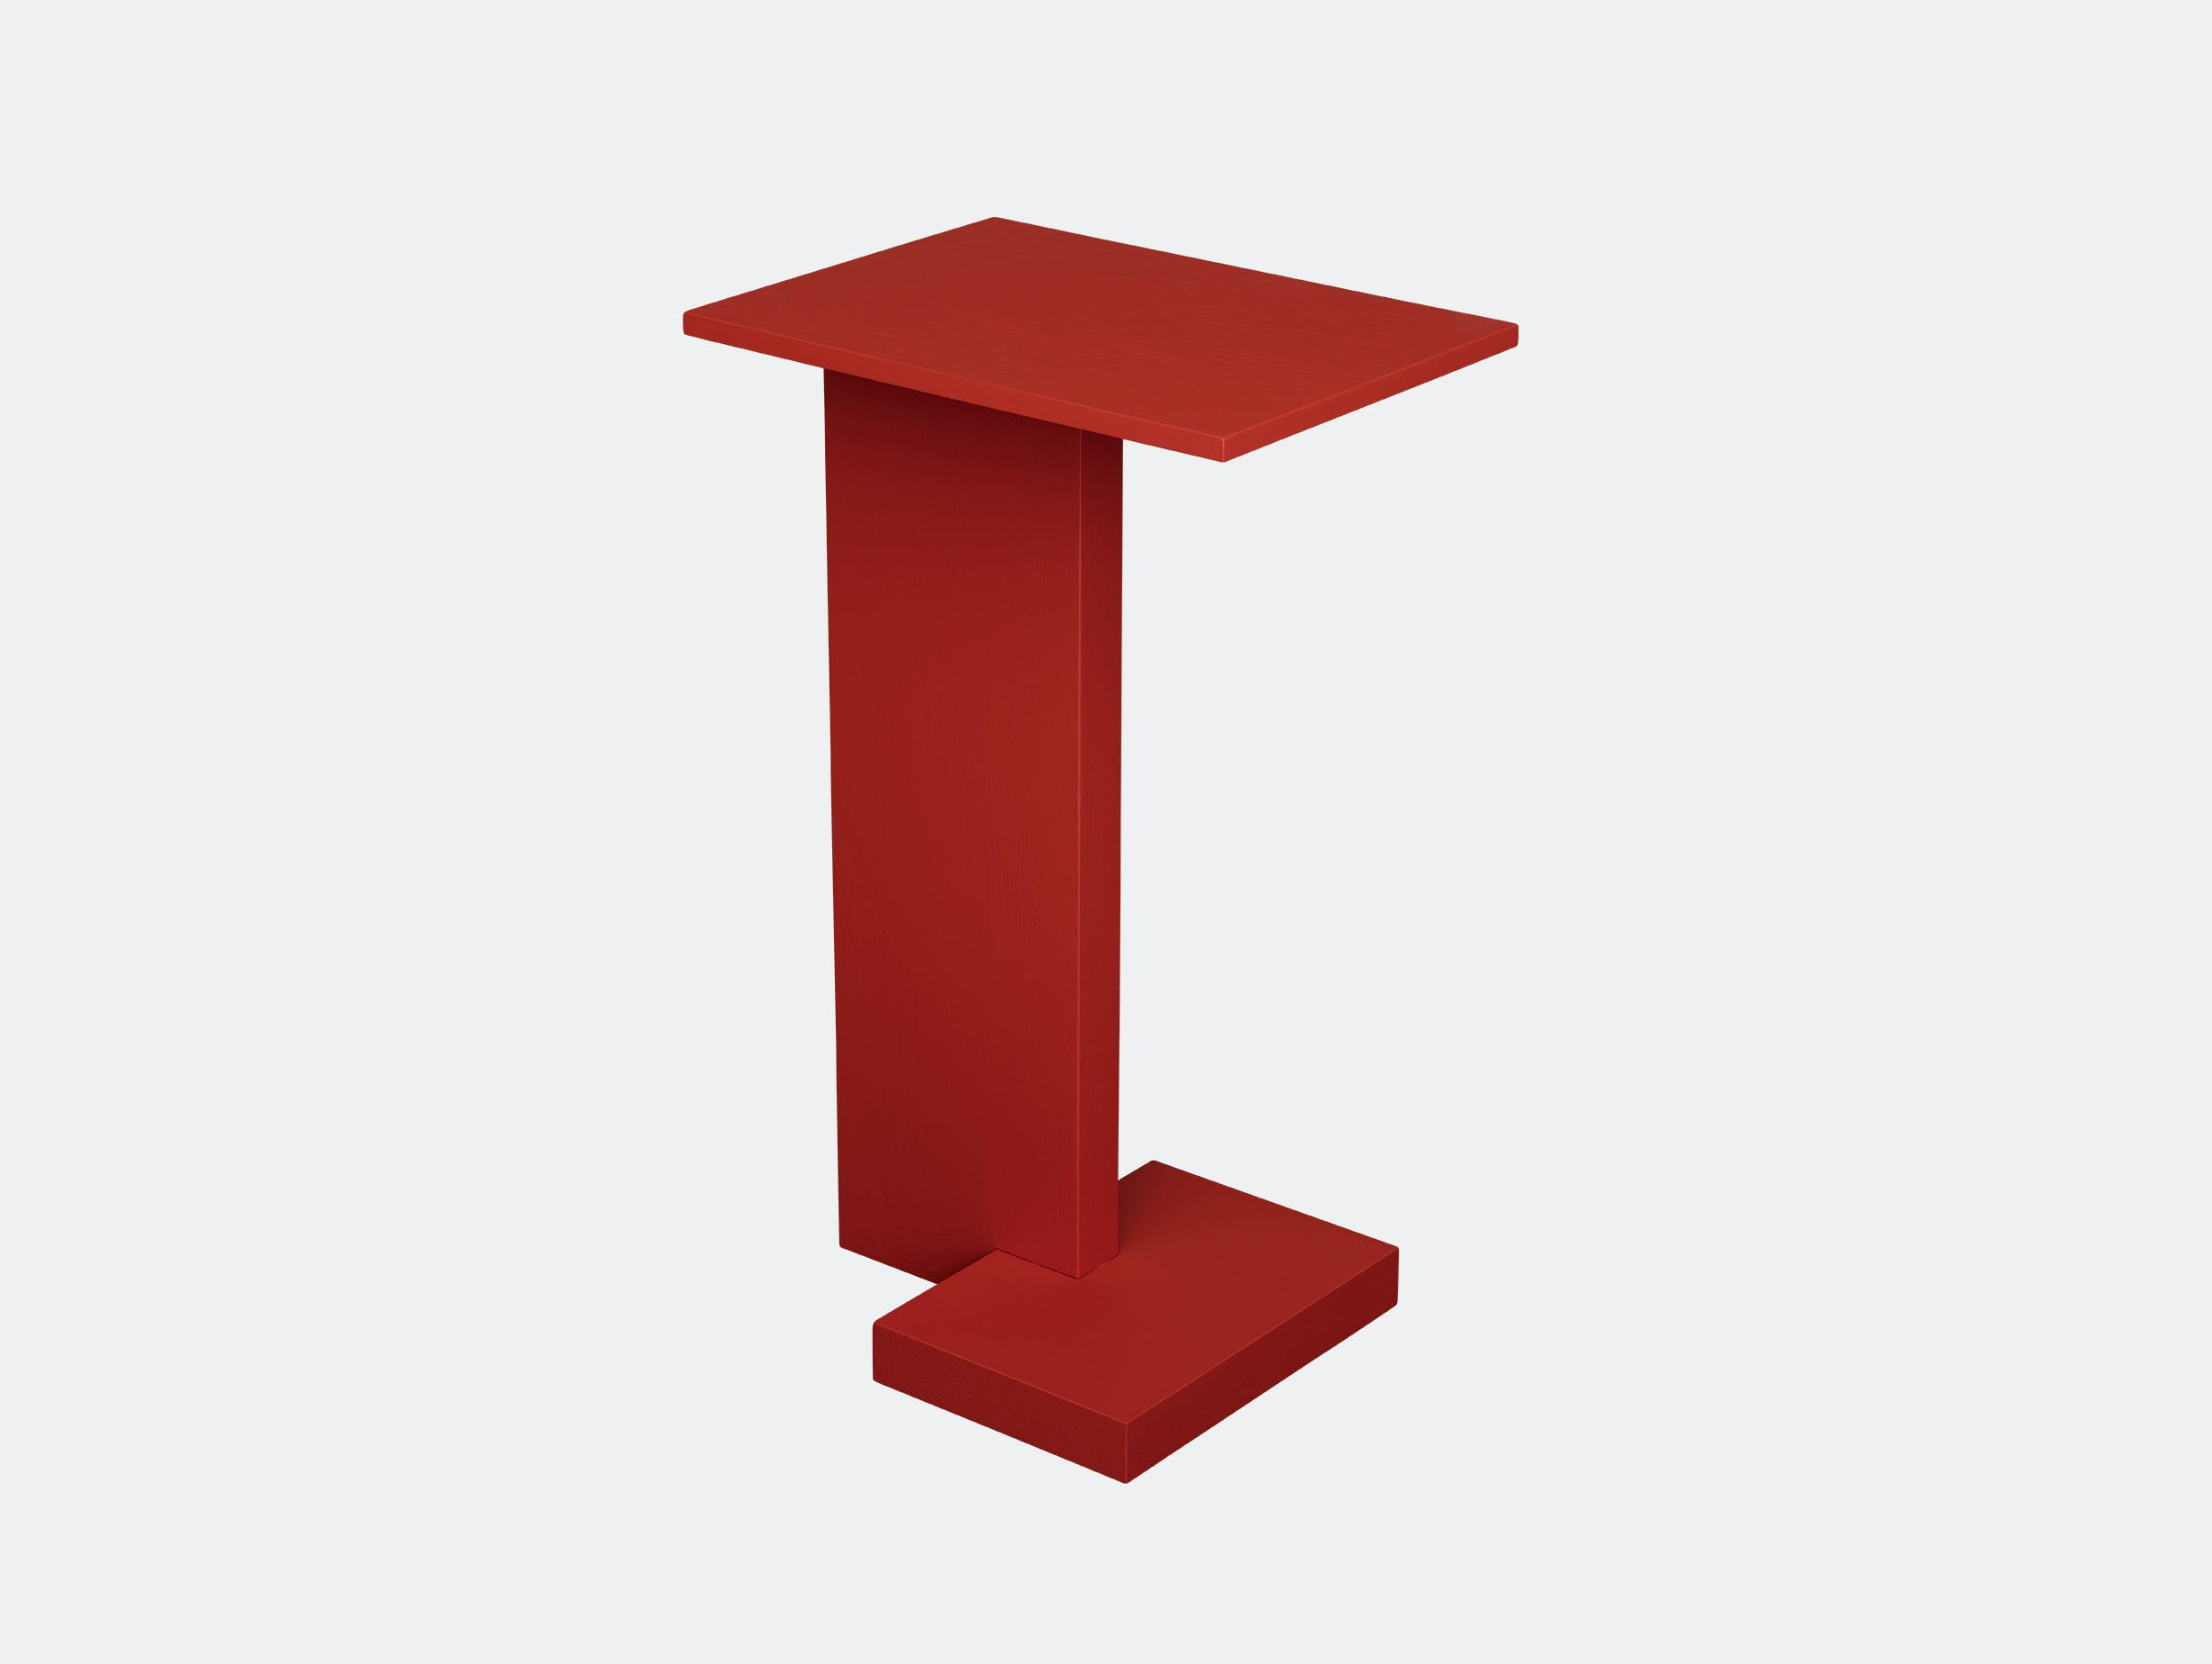 Fogia supersolid object 5 red 2